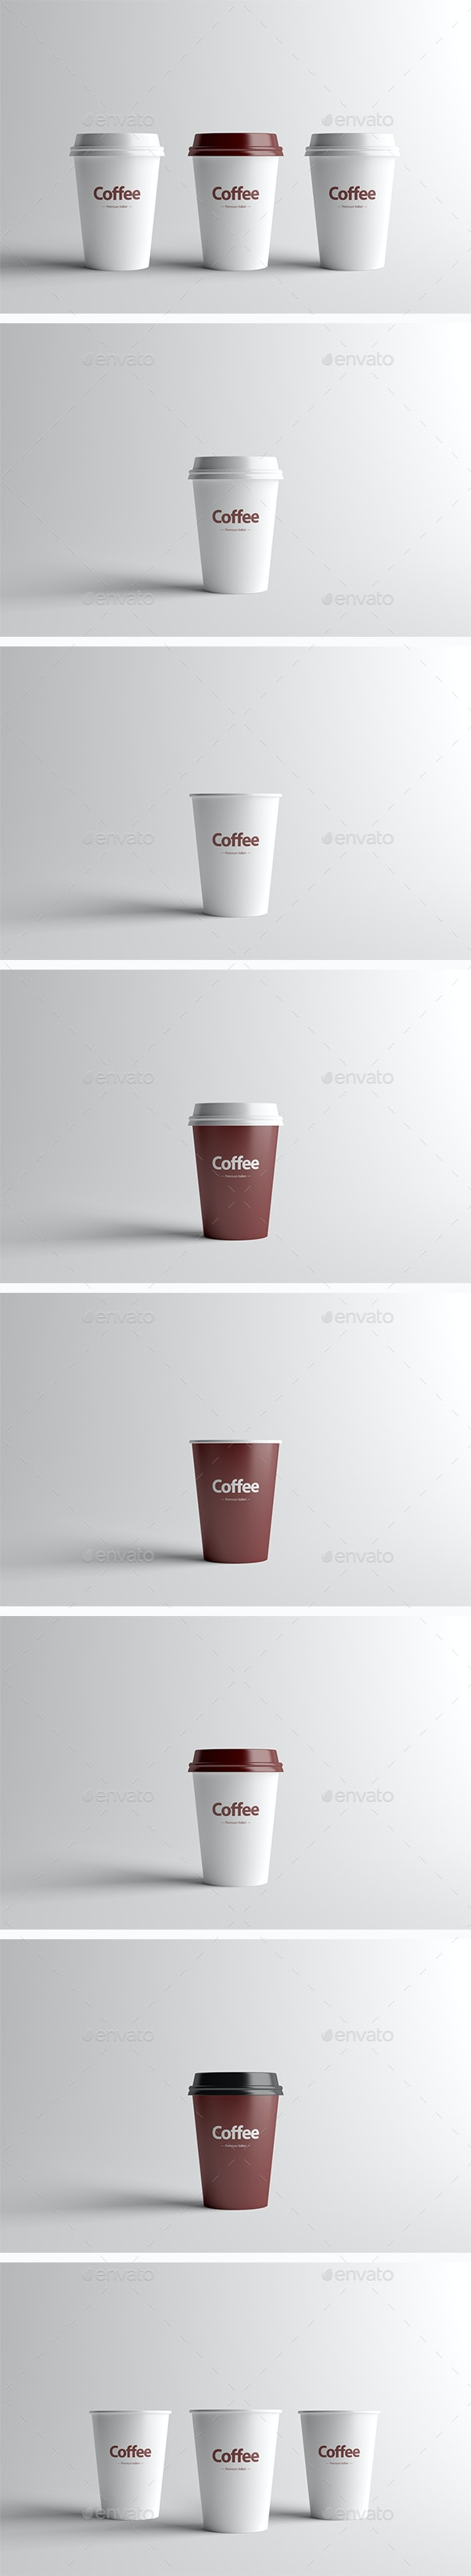 Paper Coffee Cup Packaging Mock-Up - Small - Food and Drink Packaging